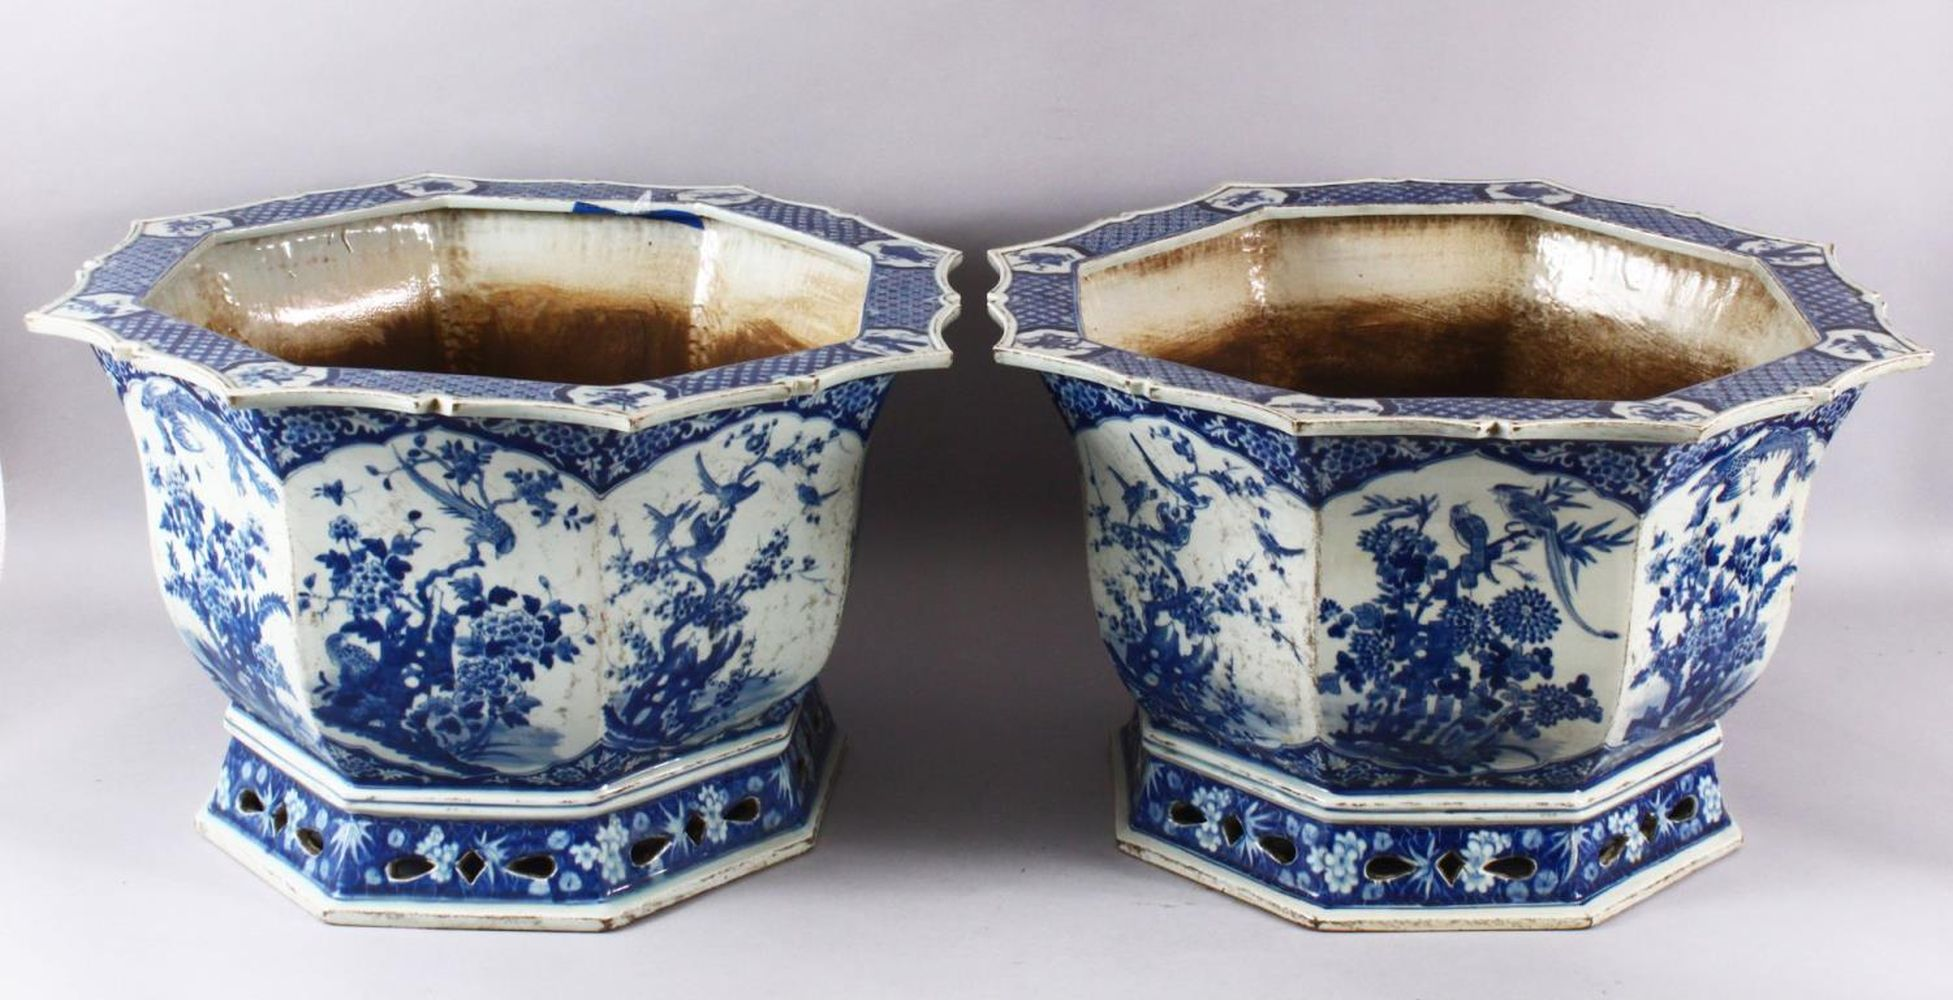 A PAIR OF LARGE CHINESE BLUE & WHITE OCTAGONAL PORCELAIN JARDINIERE / PLANTERS, decorated with